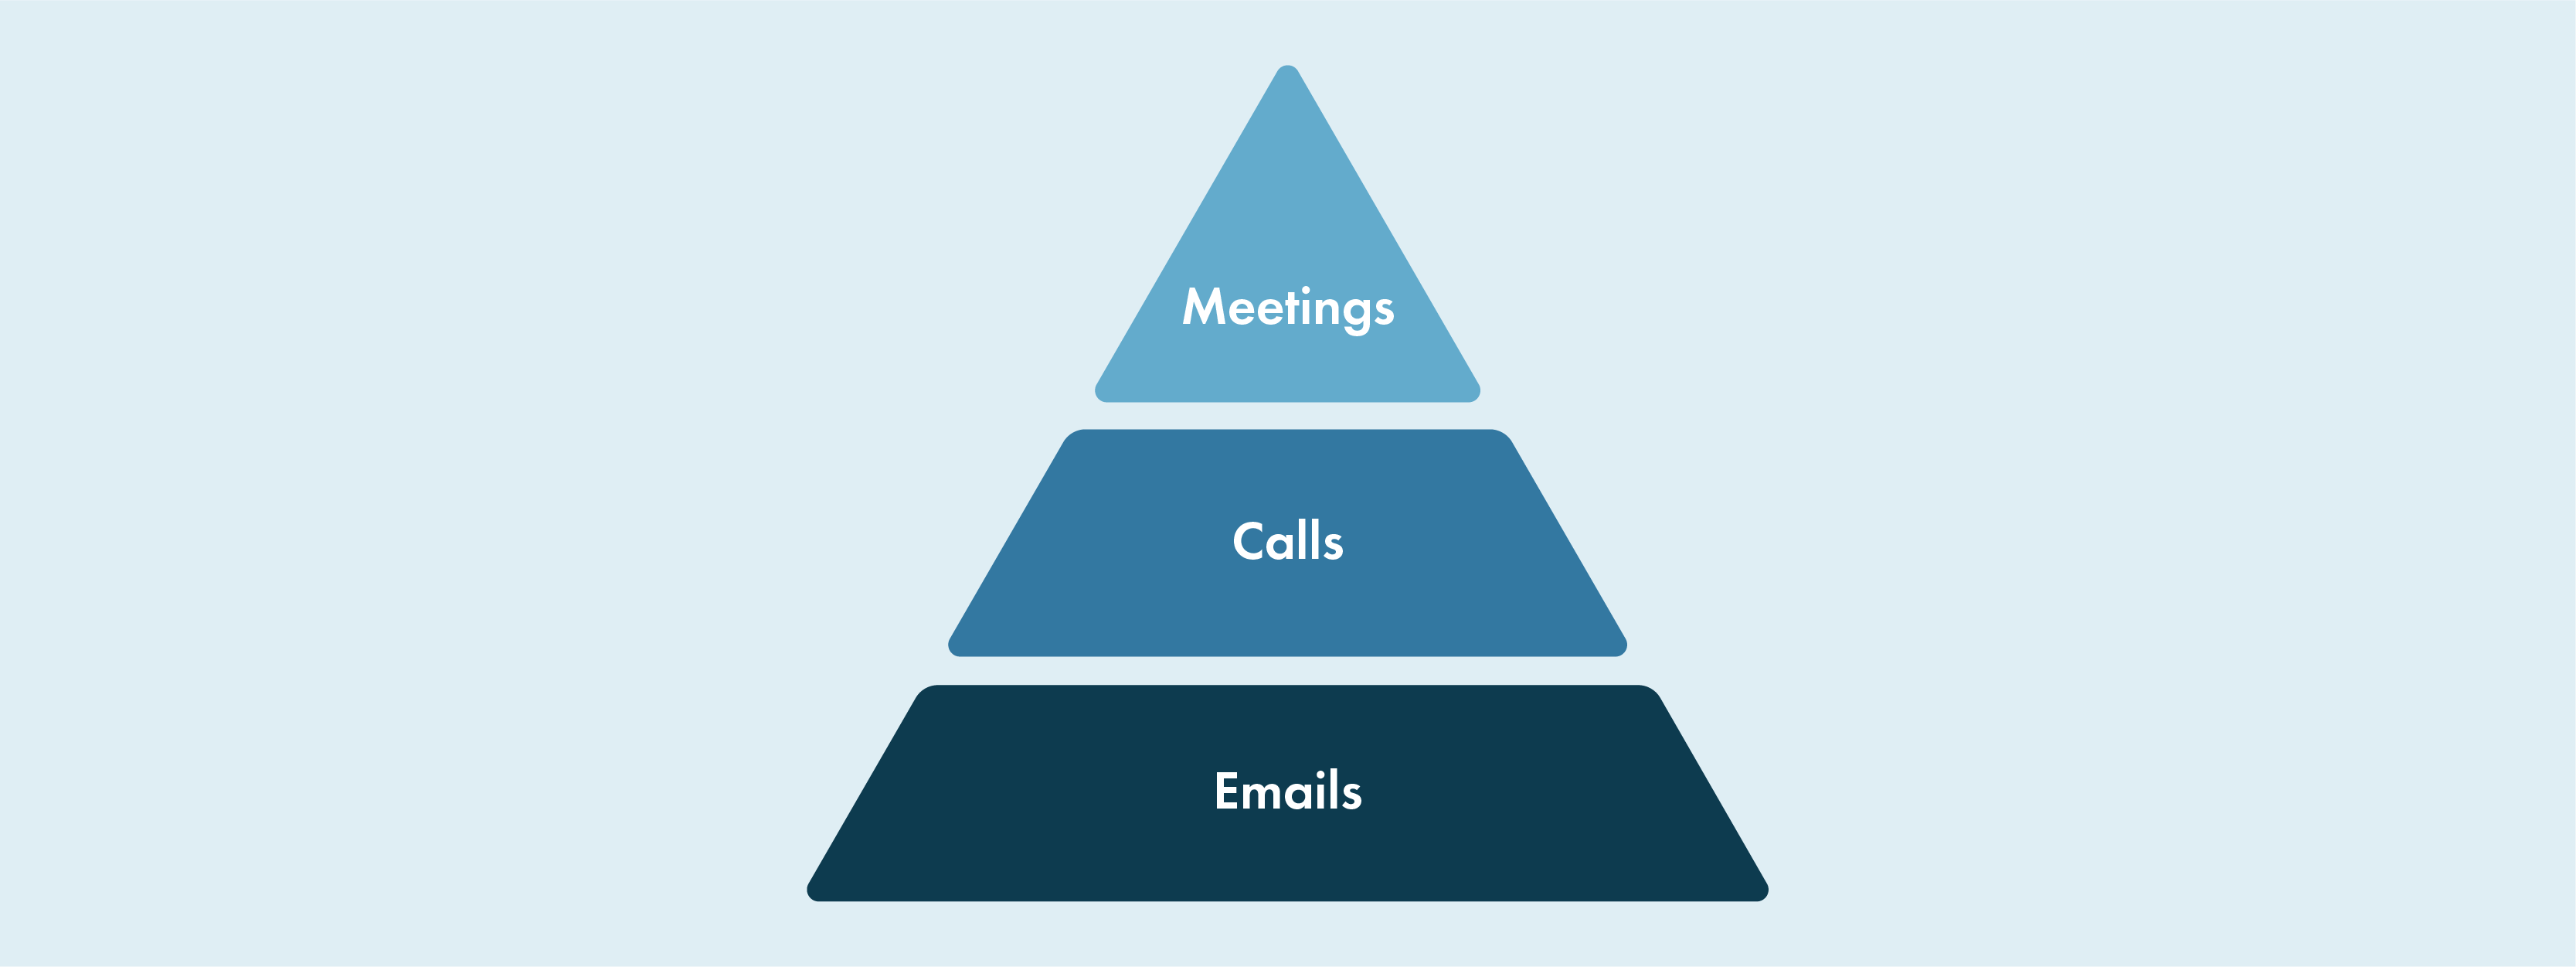 Pyramid graphic with meetings on top, calls in the middle, and emails on the bottom.